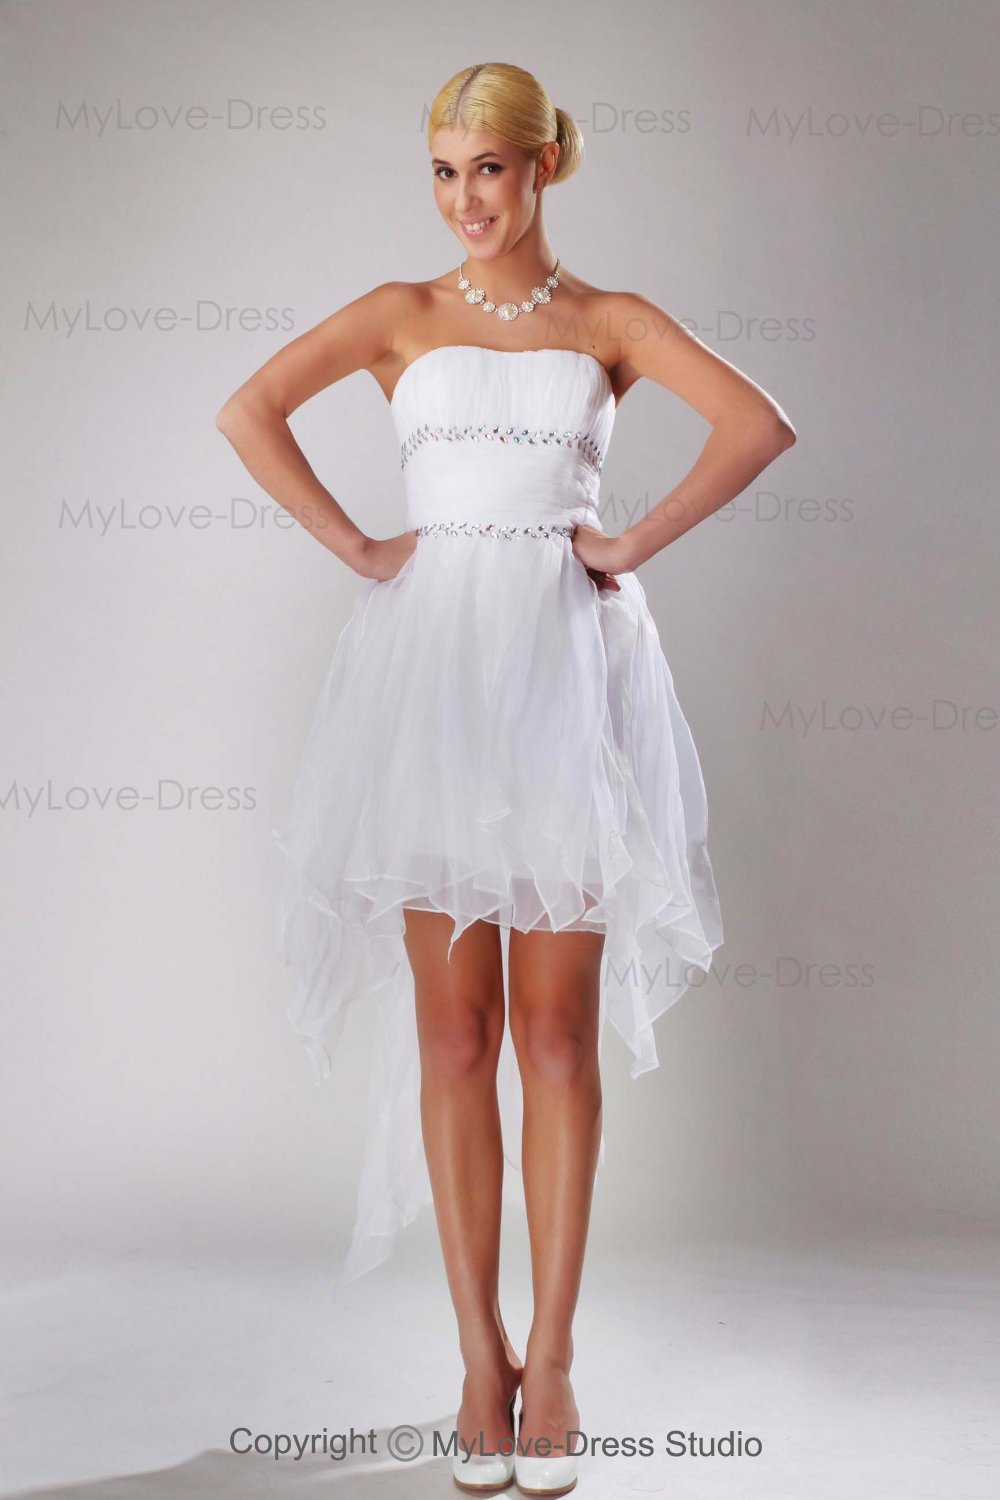 Free Shipping Newest Short Wedding Dress Features Strapless Ruffle Rhinestrone And Fancy Train For 2013 In Stock(China (Mainland))